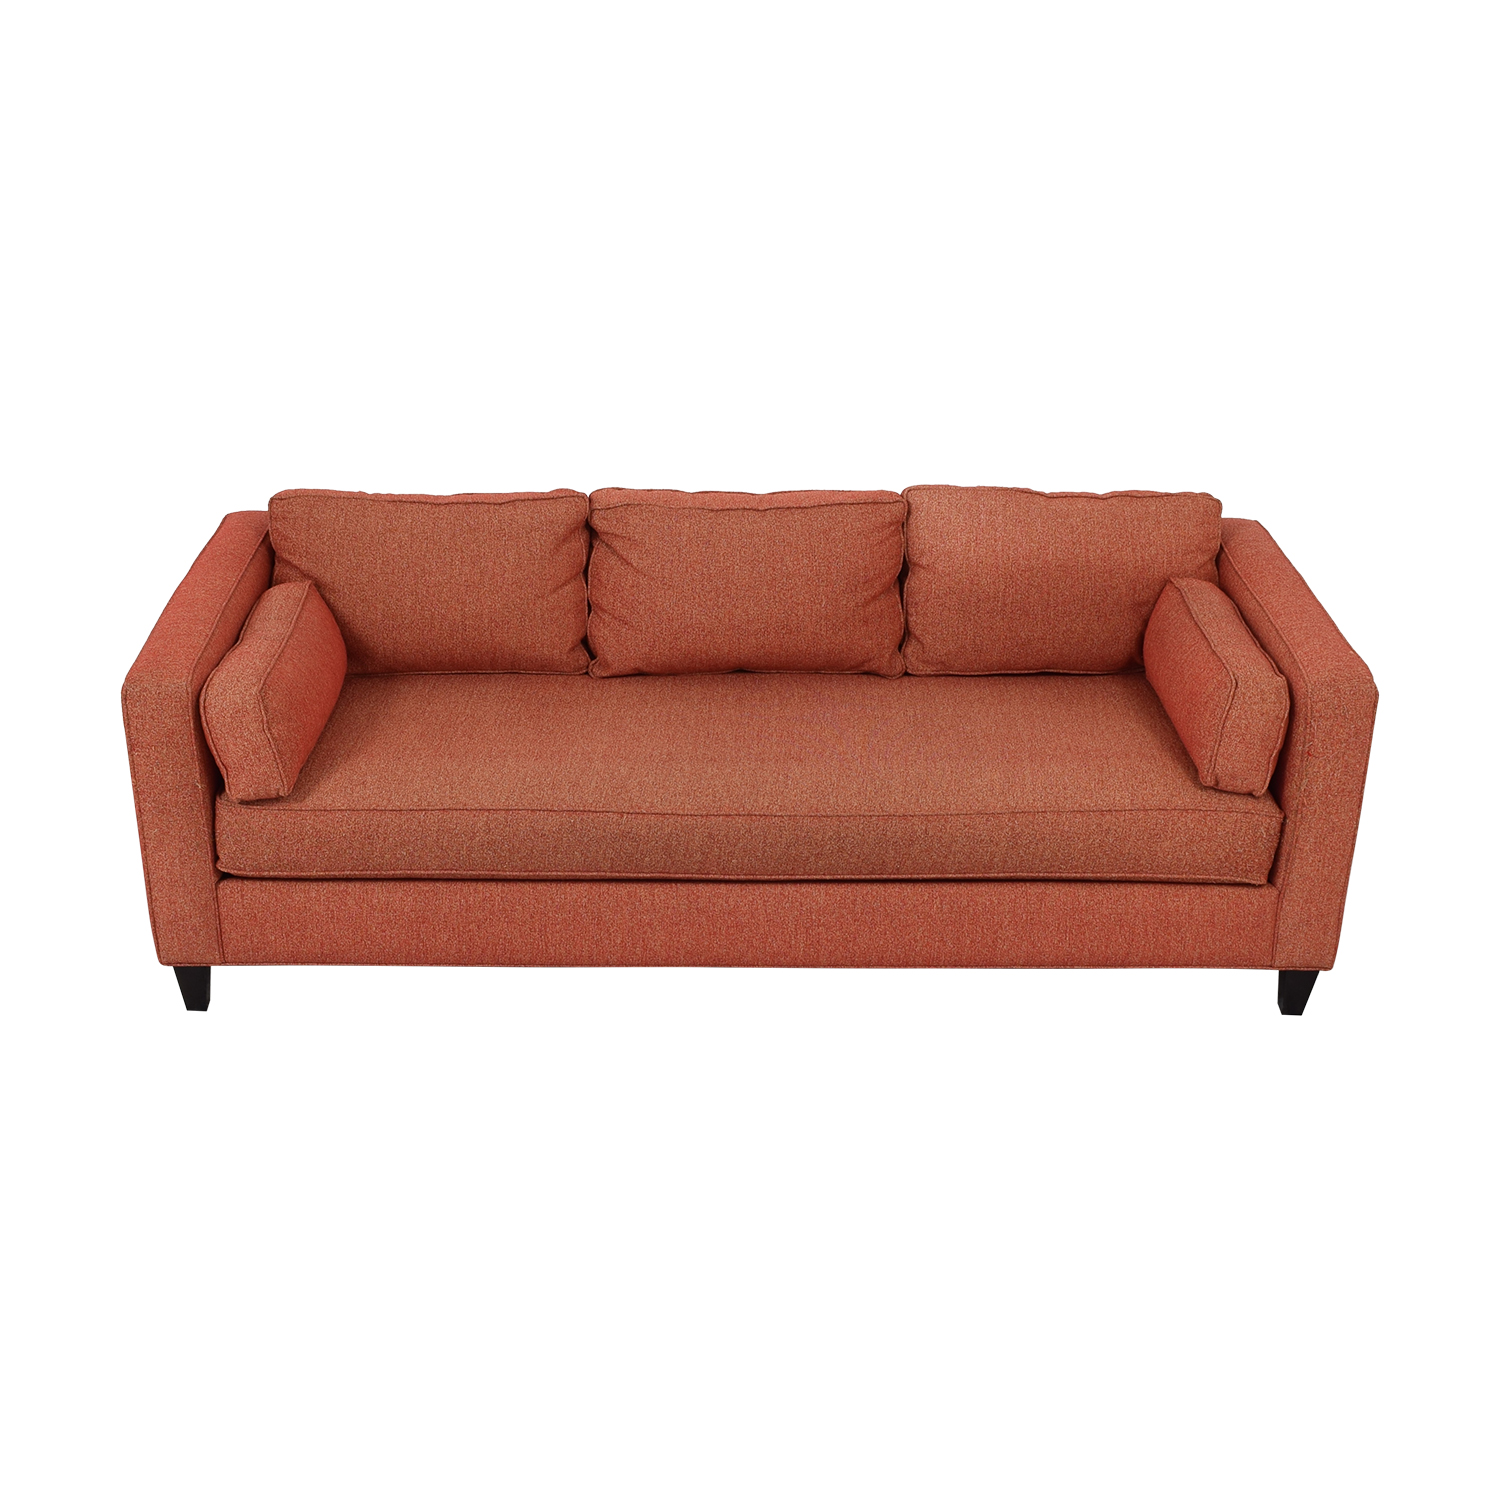 Younger Furniture Younger Furniture Single Cushion Sofa on sale